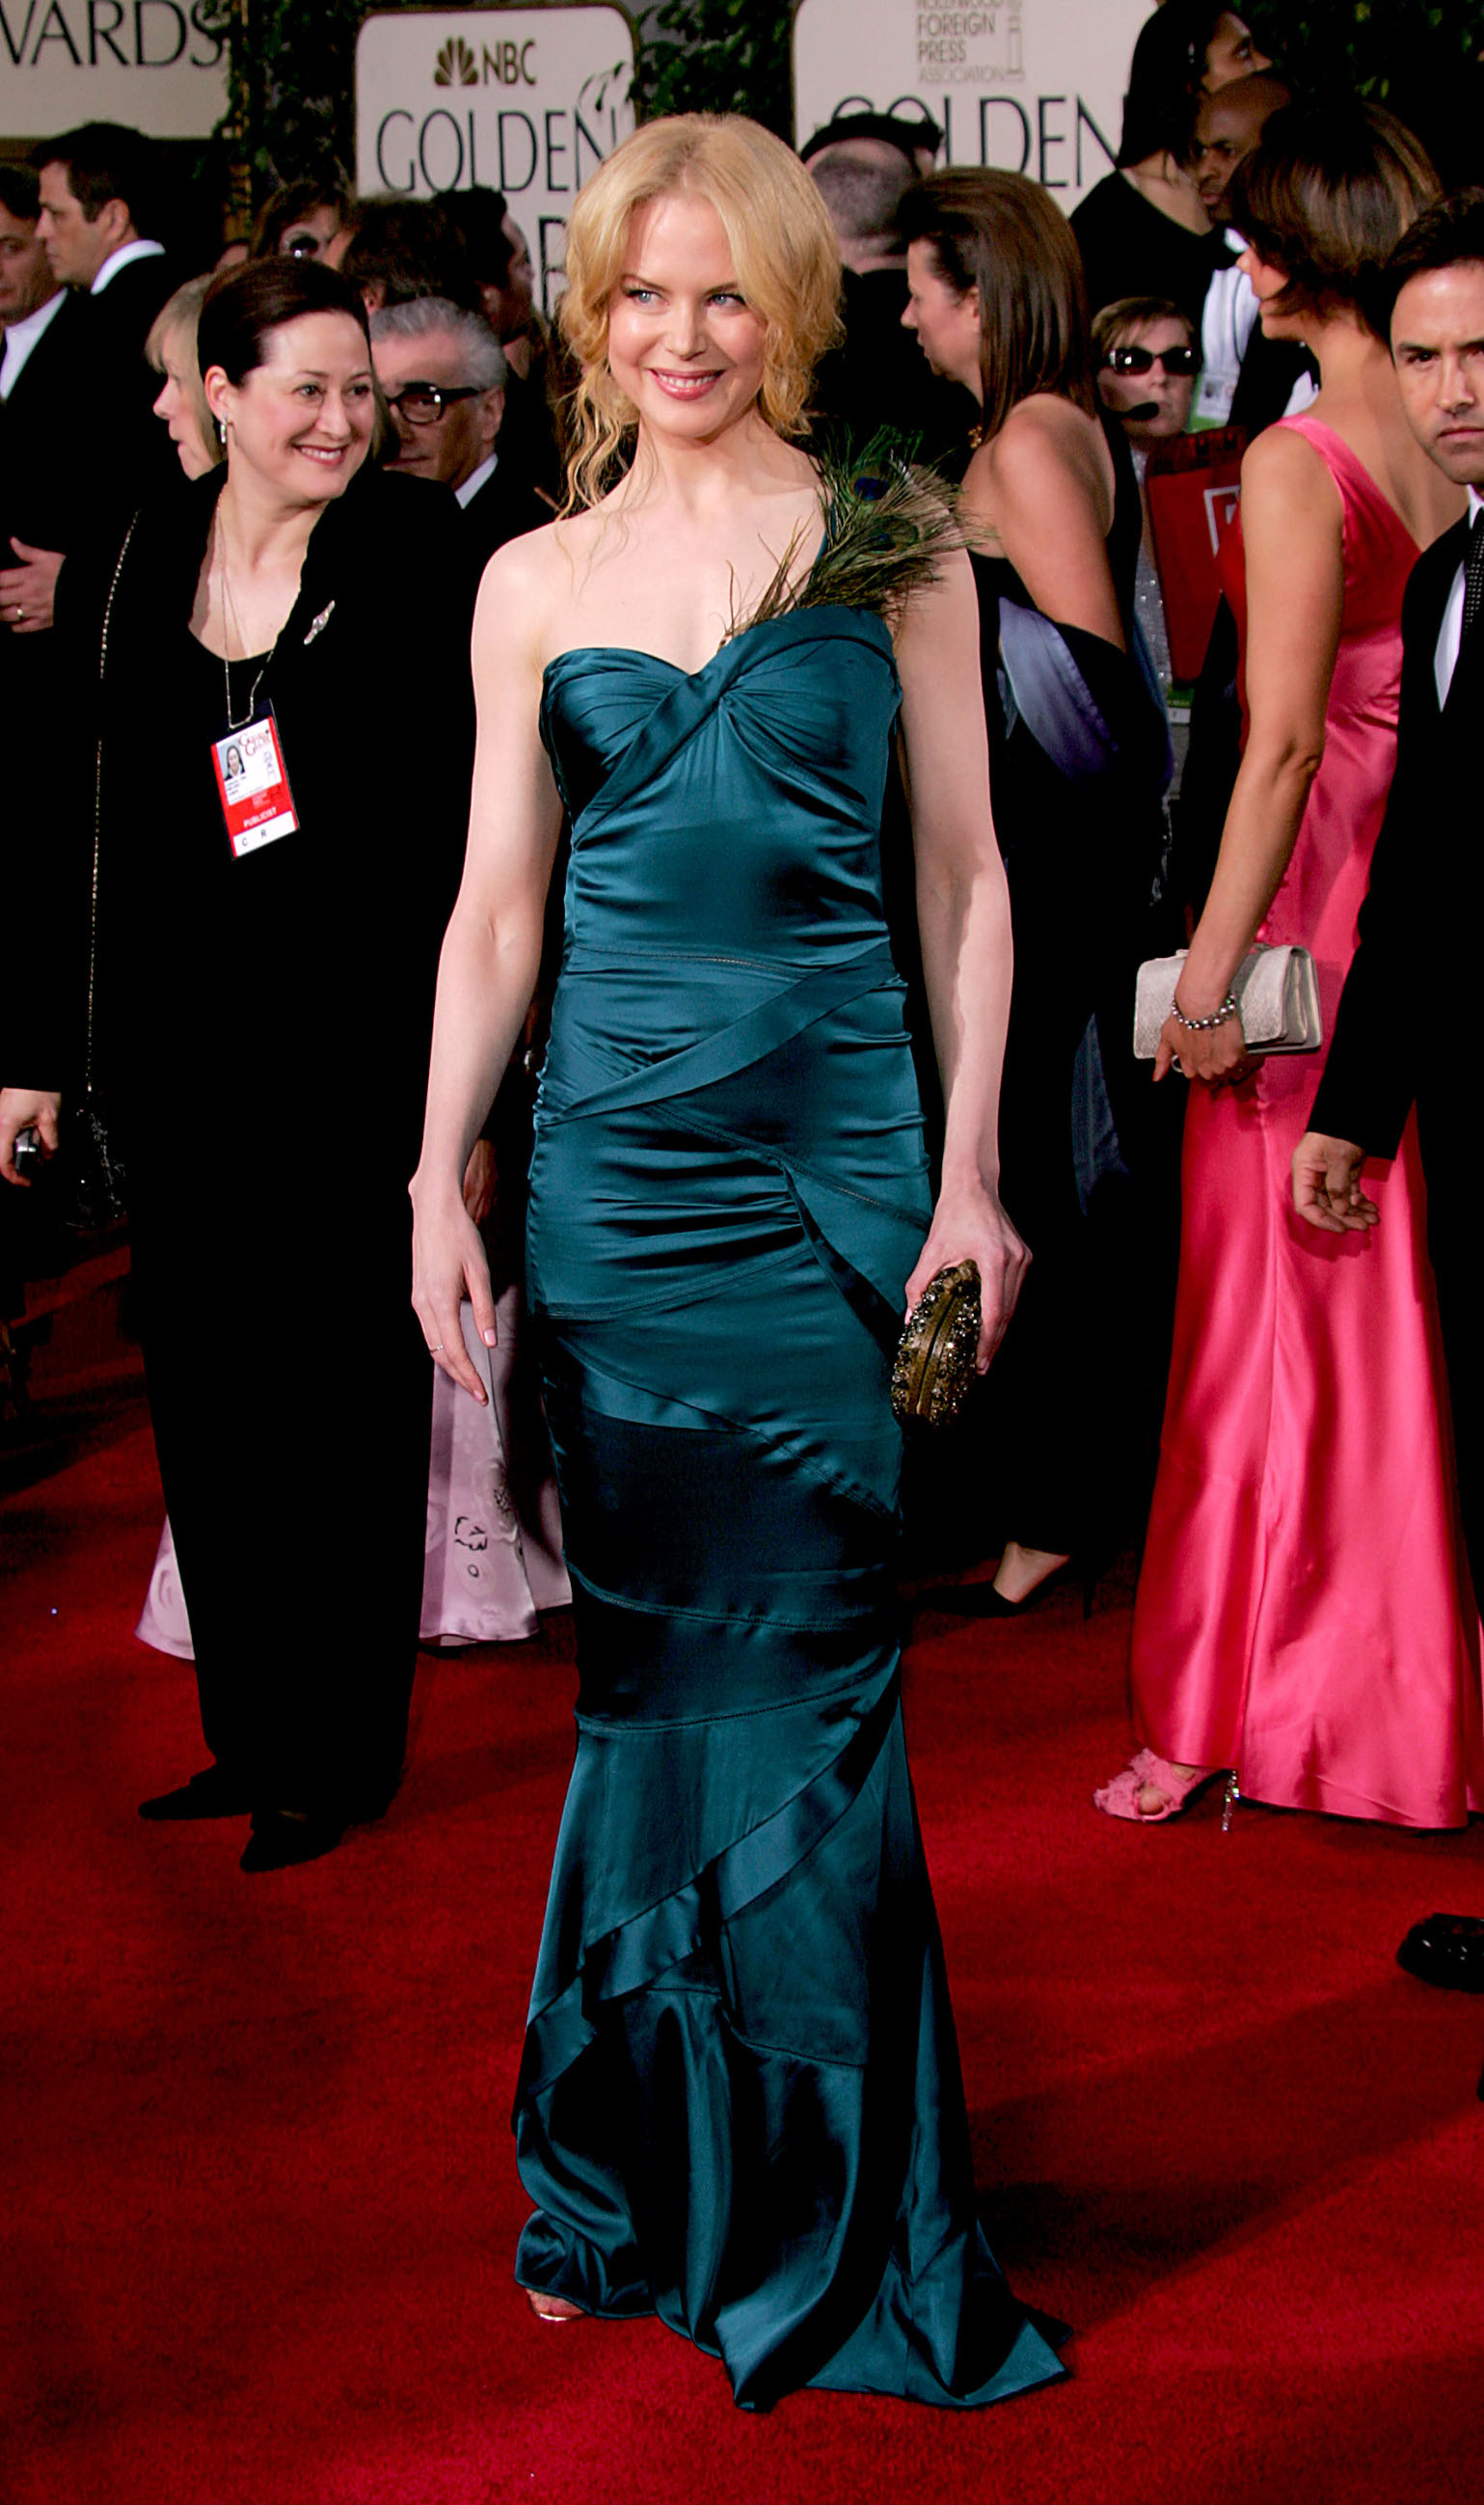 BEVERLY HILLS, CA - JANUARY 16:  Actress Nicole Kidman arrives to the 62nd Annual Golden Globe Awards at the Beverly Hilton Hotel January 16, 2005 in Beverly Hills, California. (Photo by Carlo Allegri/Getty Images)